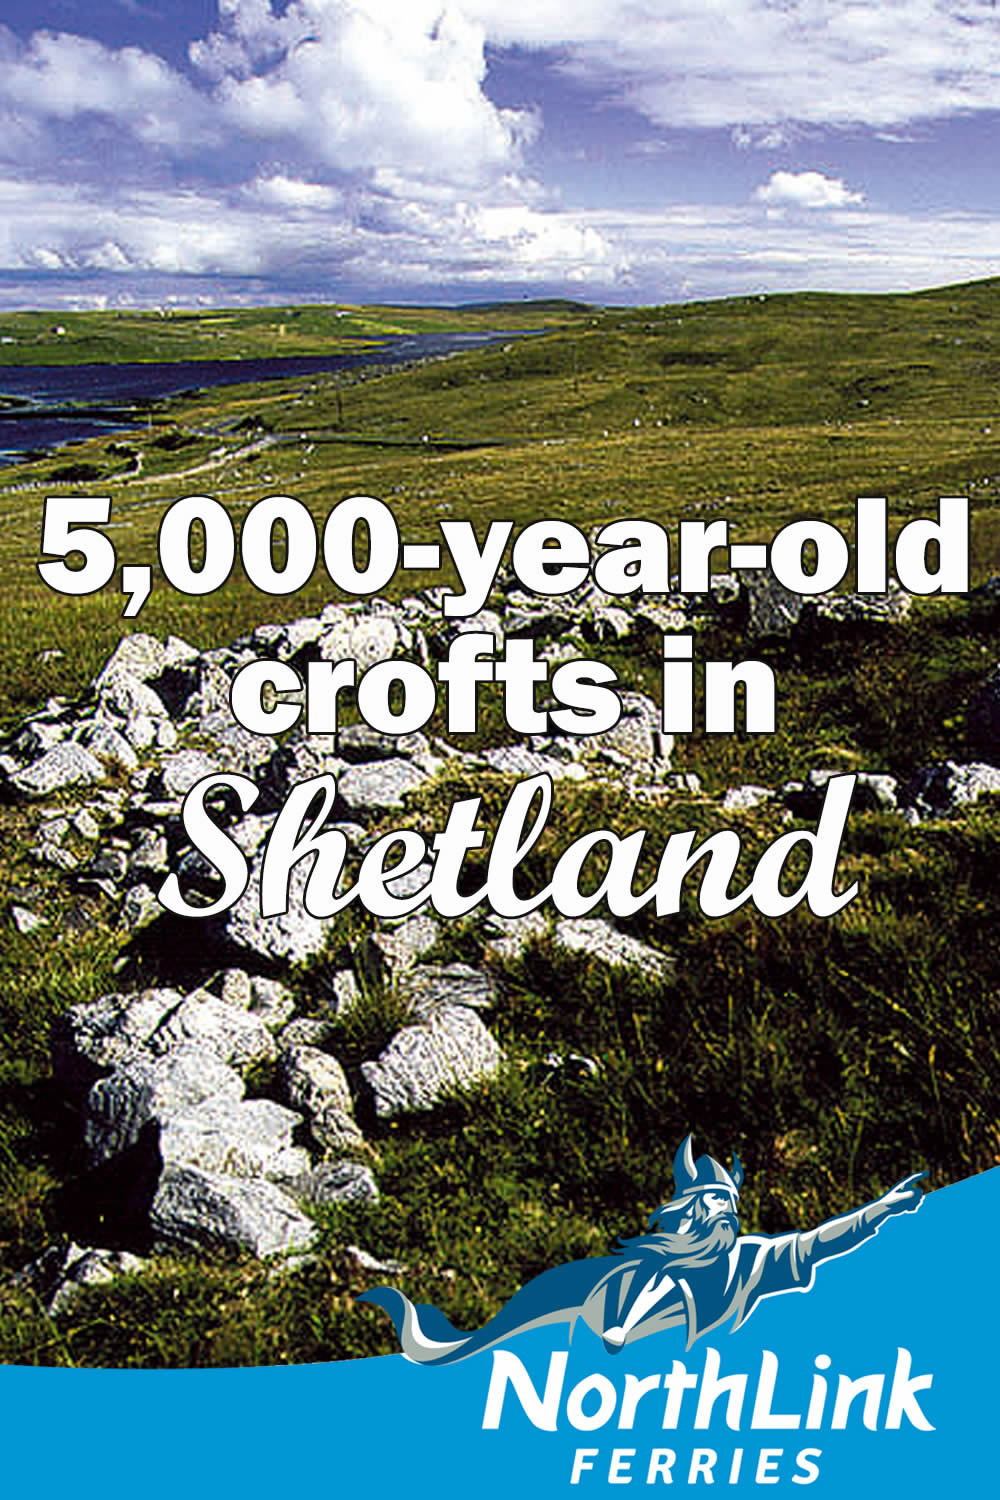 5,000-year-old crofts in Shetland